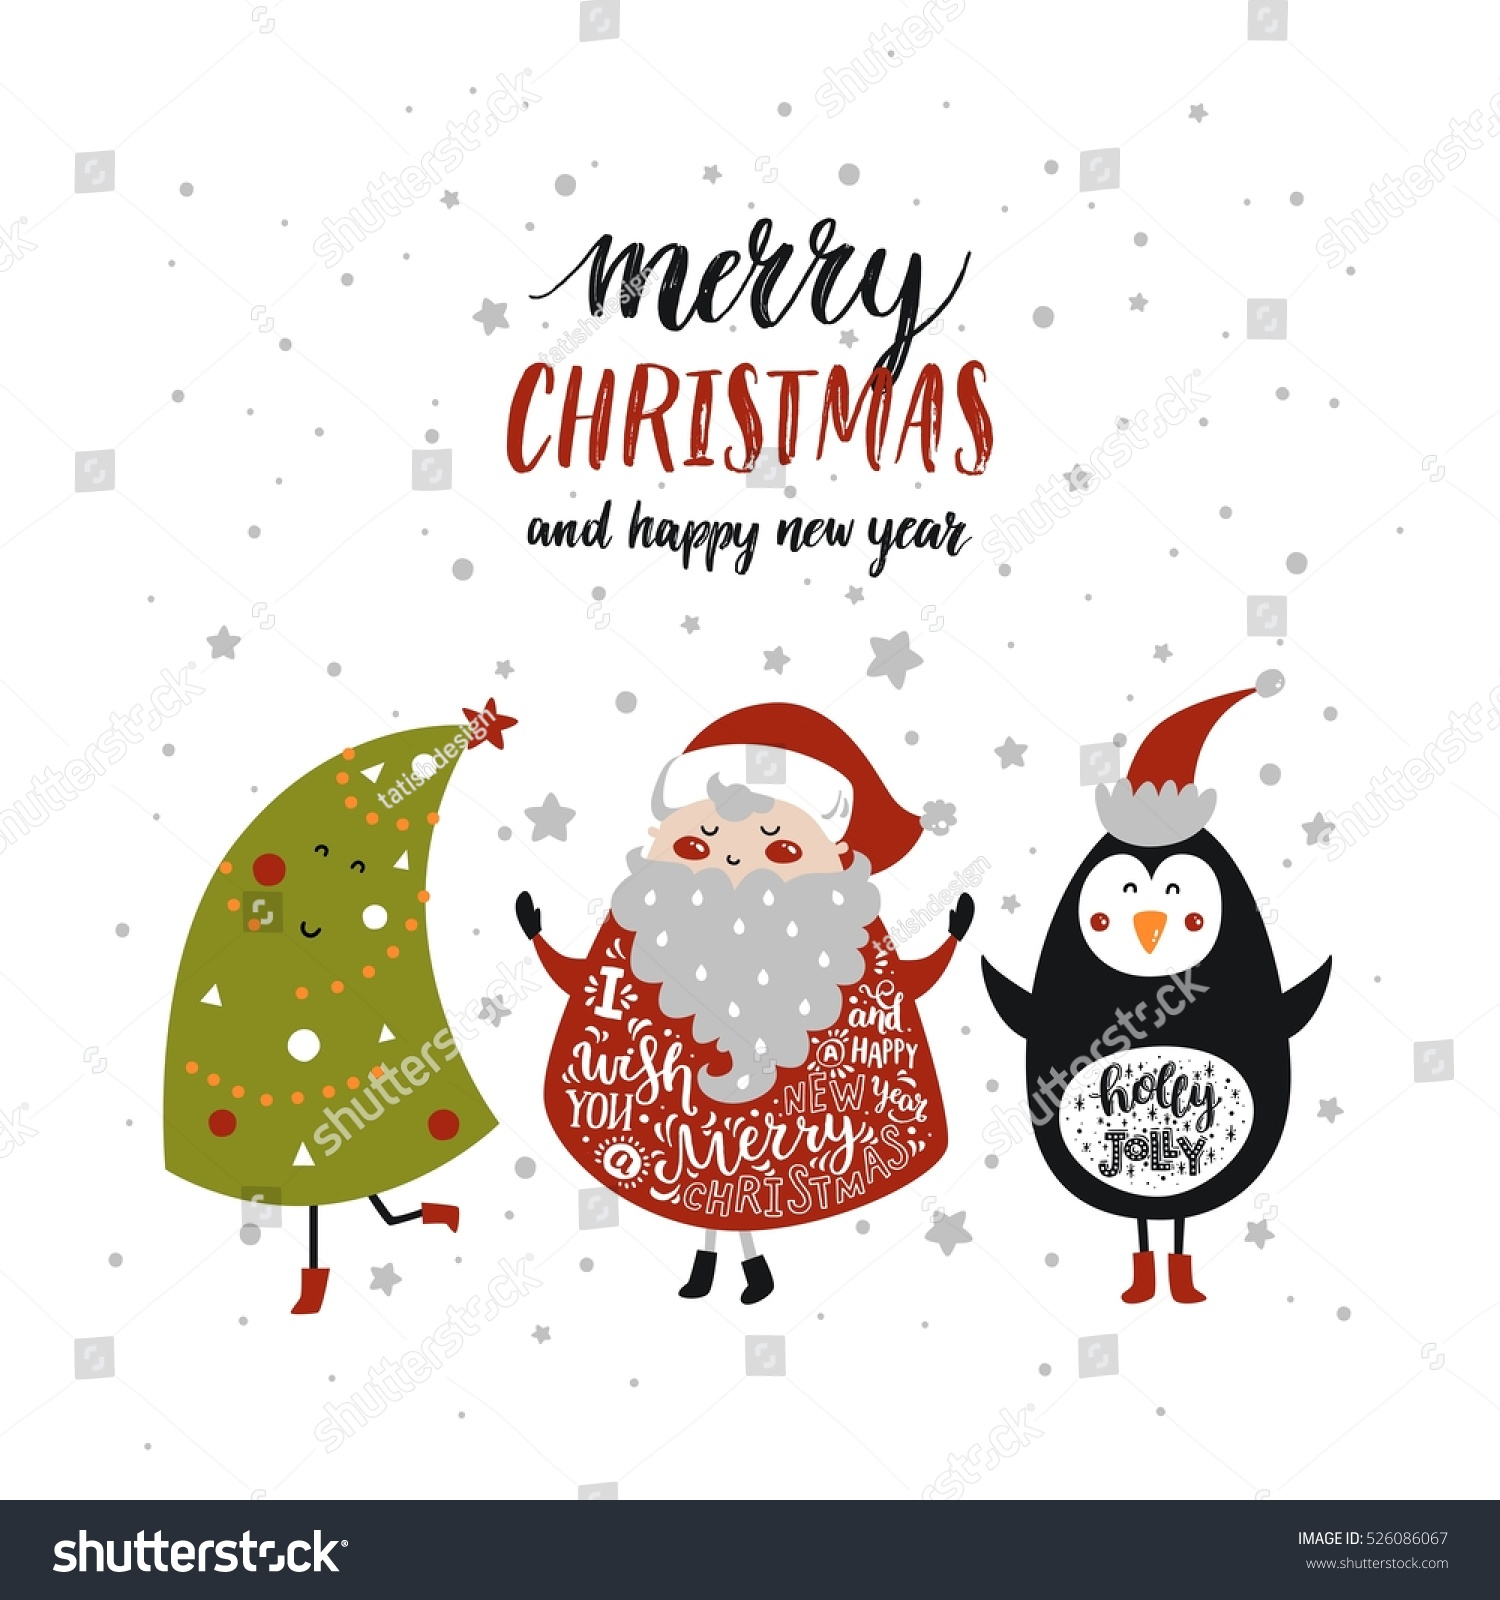 Merry Christmas Card Cute Santa Claus Stock Vector Royalty Free